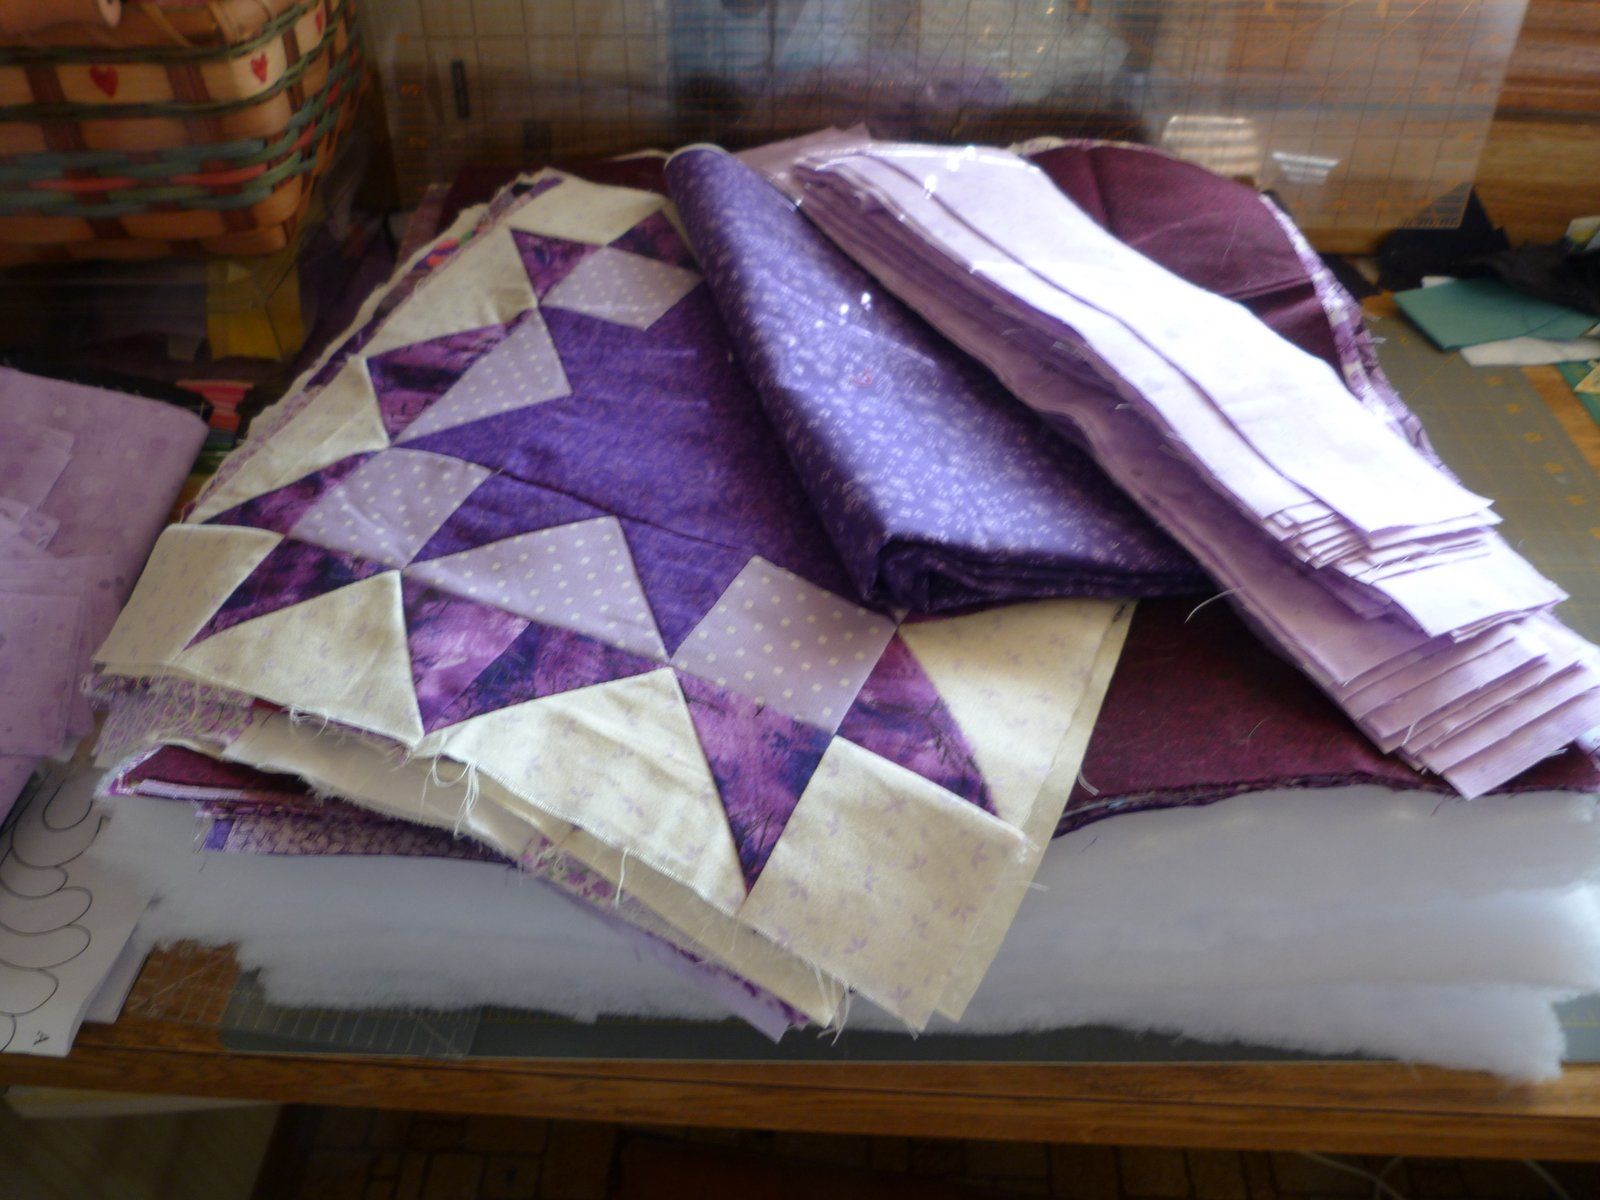 chmusings: Periwinkle quilt blocks